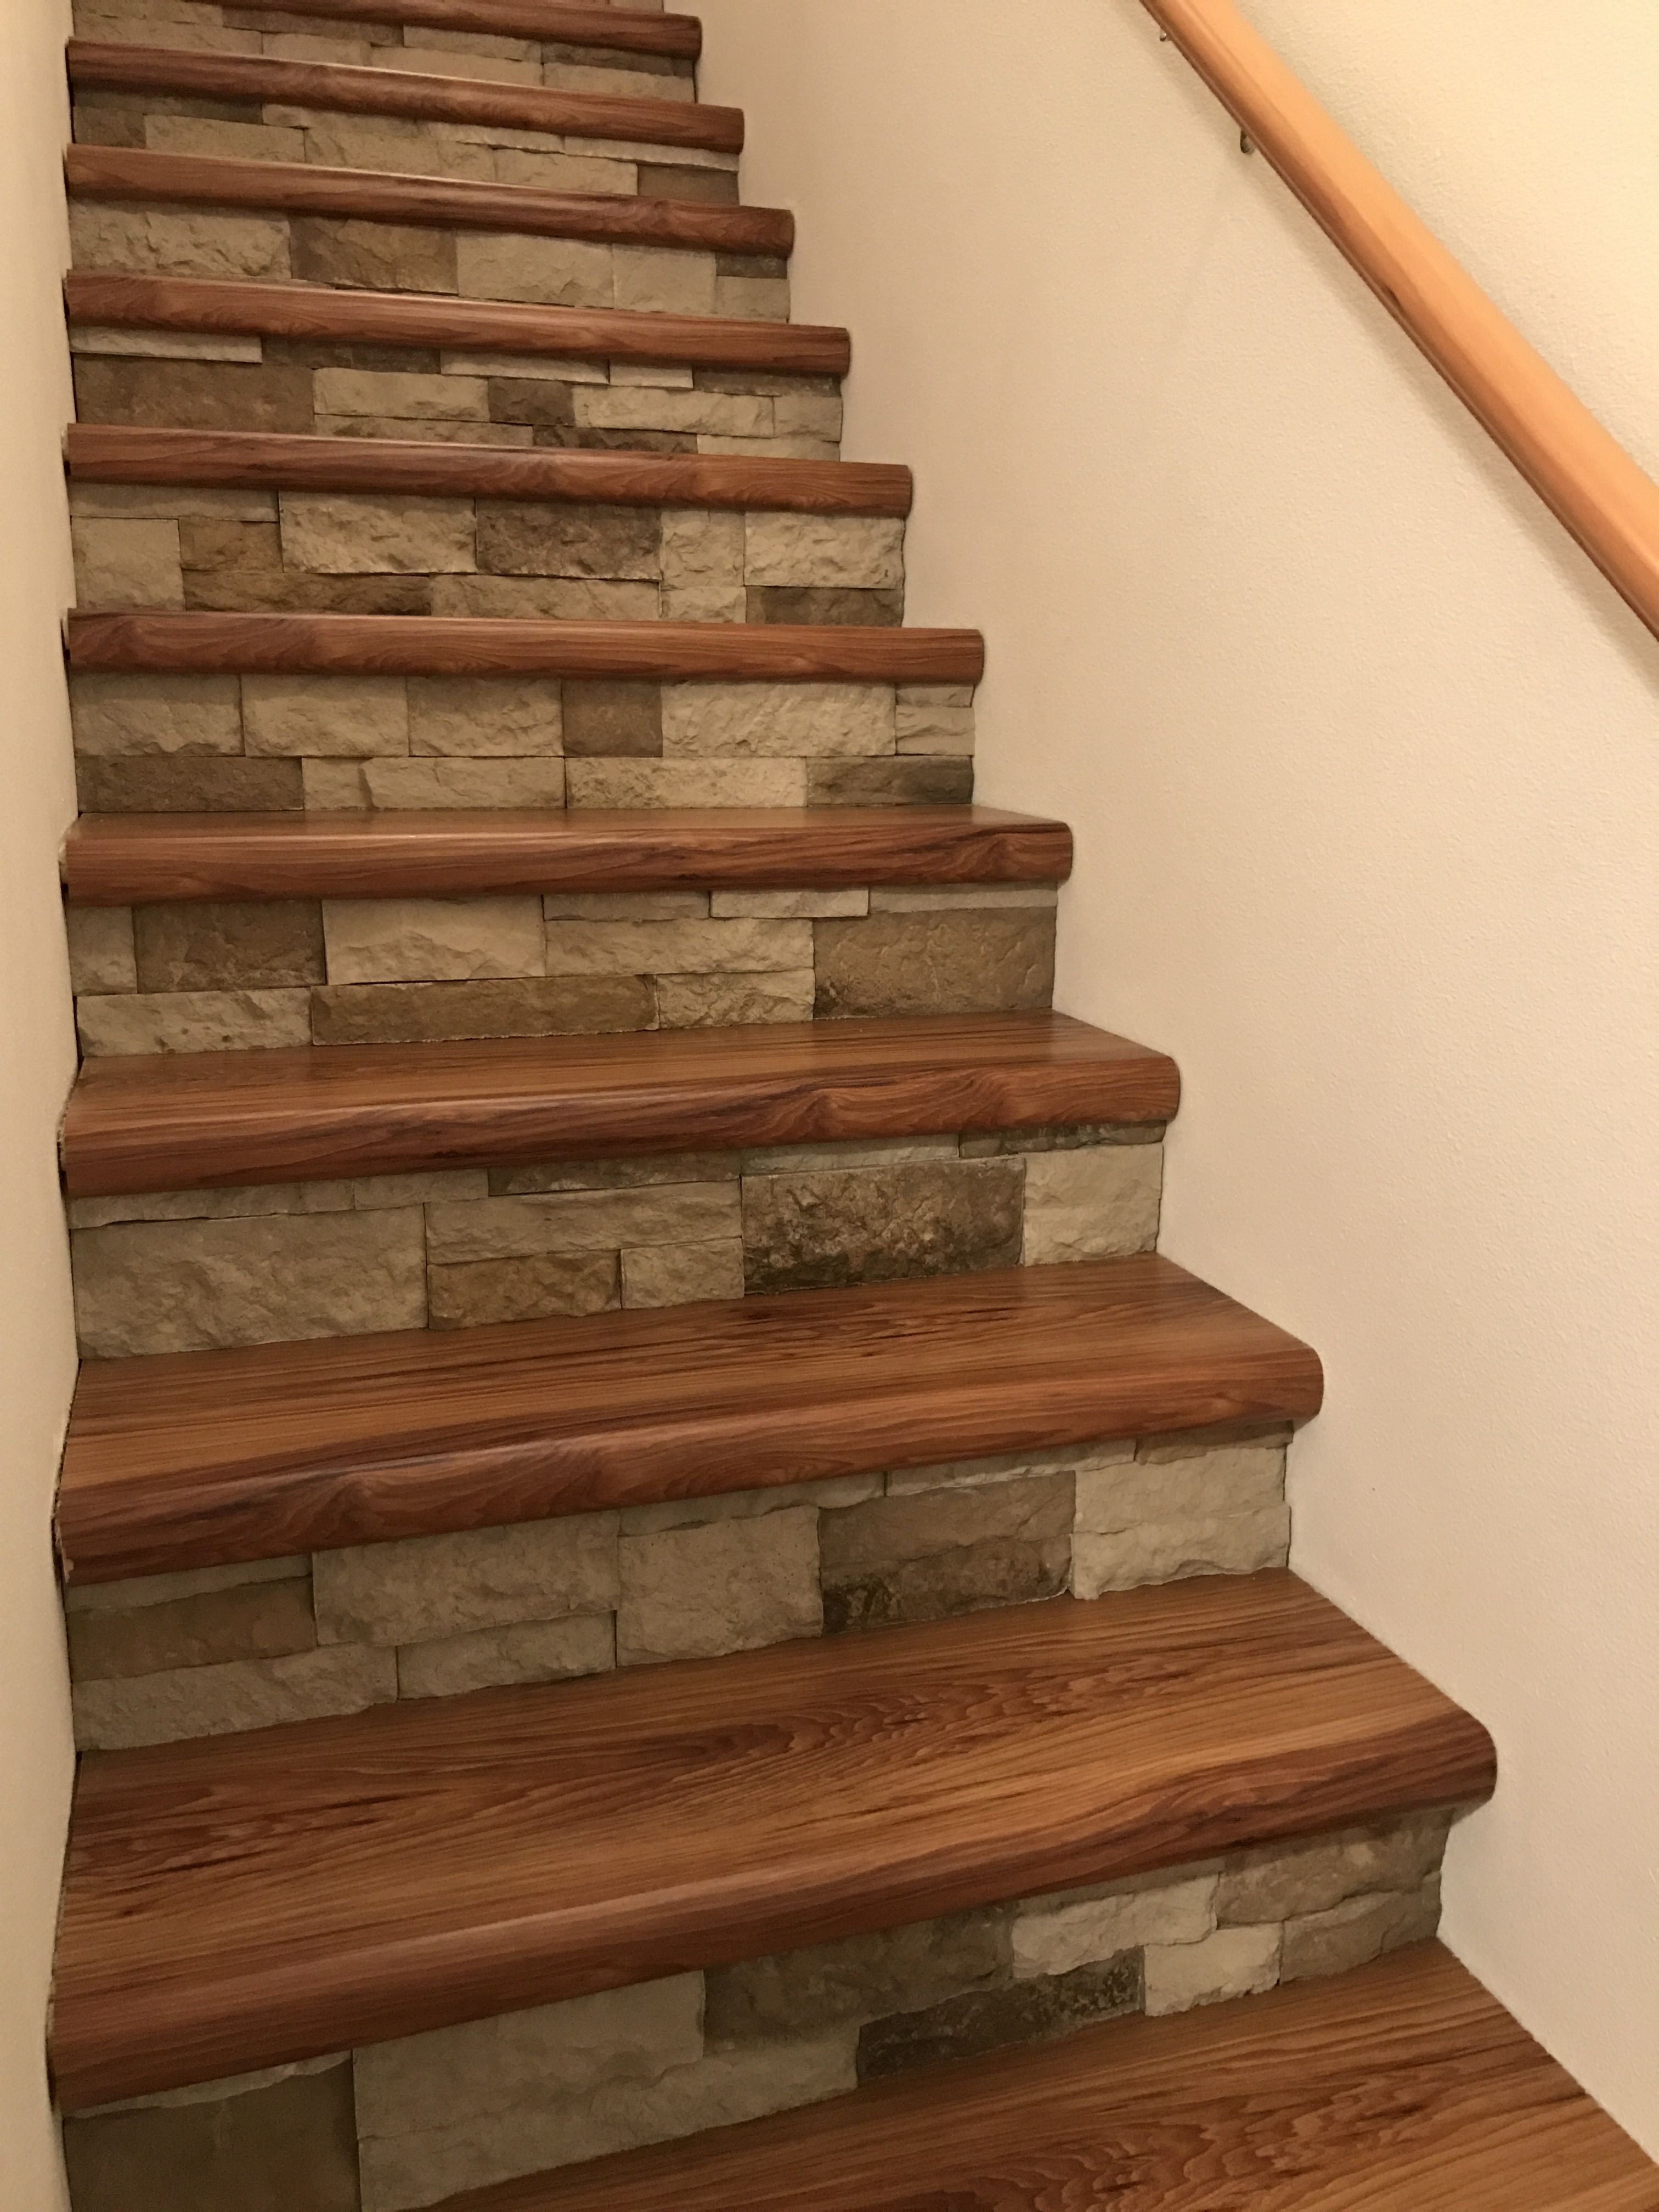 Cap A Tread And Airstone Stairs No More Carpet Took About 2 Days | Flooring For Stairs Not Carpet | Stair Tread | Stain | Staircase Makeover | Bullnose Carpet | Laminate Flooring